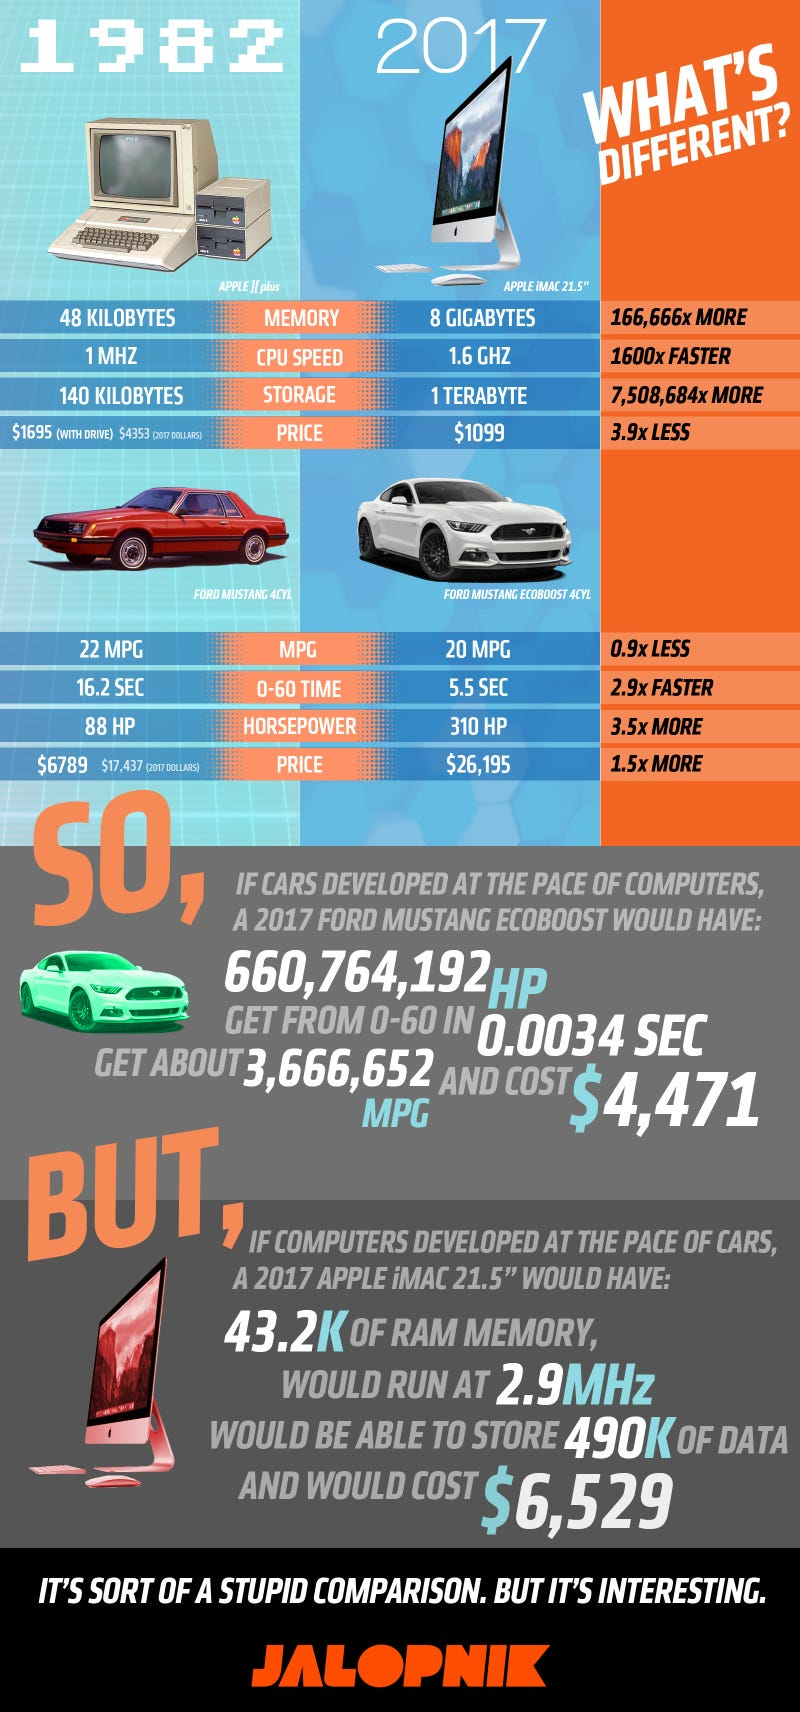 Here's How Fast Cars Would Be If They Advanced At The Pace Of